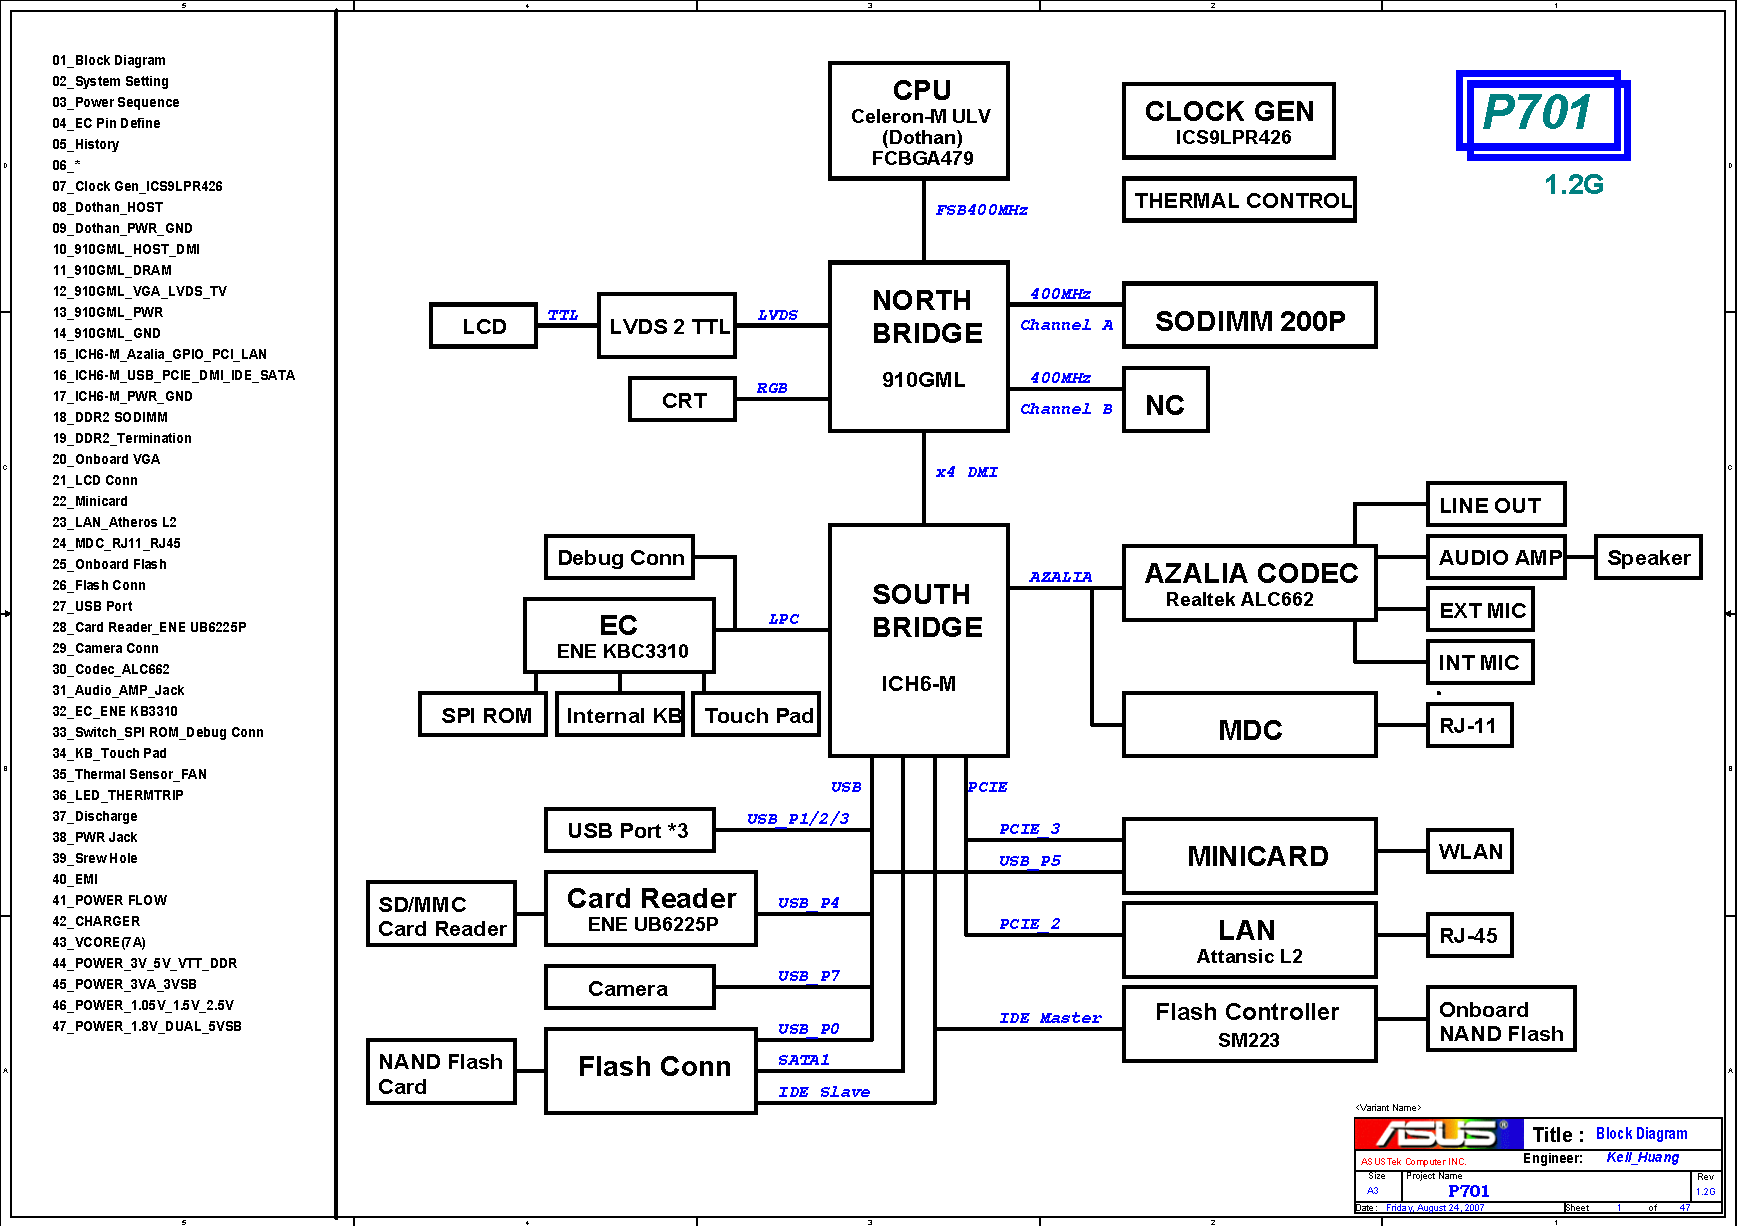 Asus P701 Block Diagram Free Schematic Bridge Project Circuit Diag The Motherboard For Netbook Cpu Celeron M Ulv Dothan North 910gml South Ich6 Name